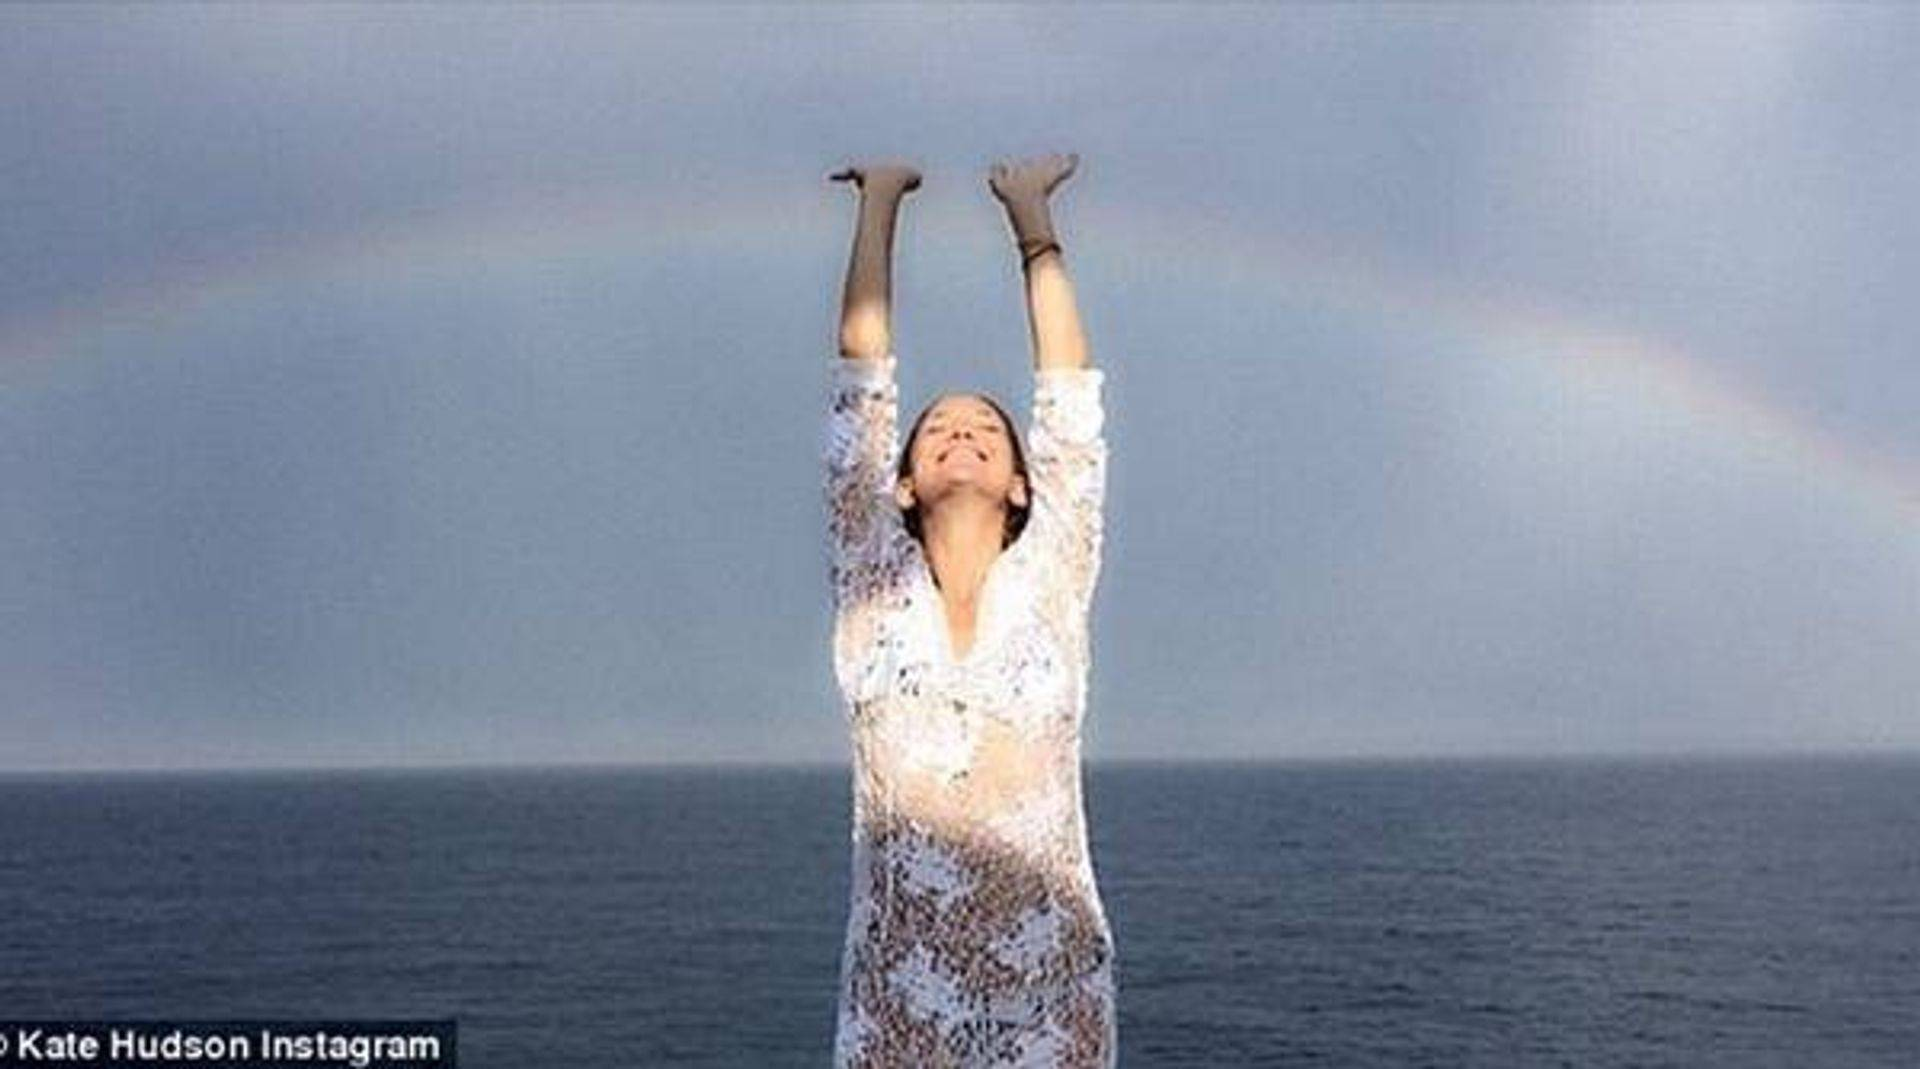 Touch the Rainbow in Greece, Kate Hudson